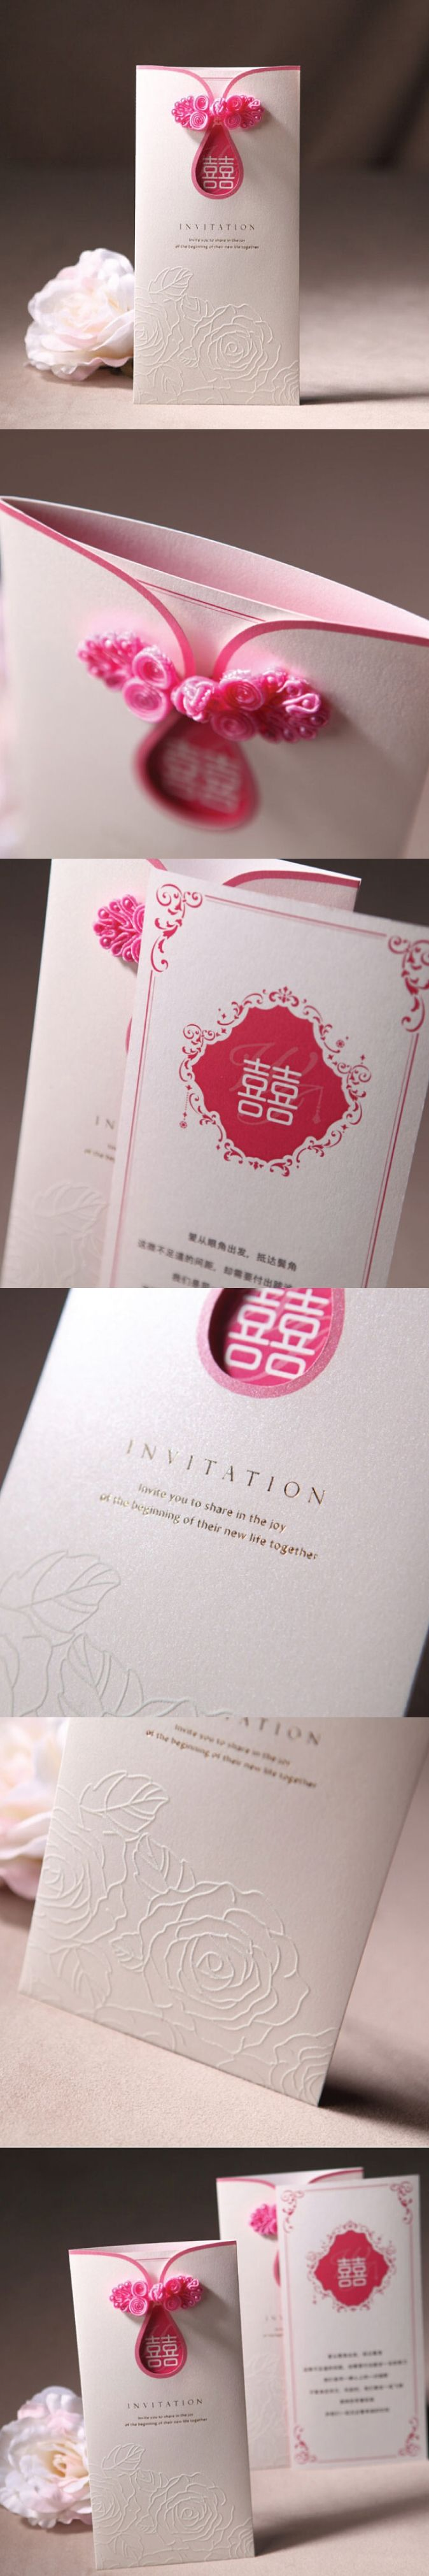 Chinese wedding invites card wedding cards pinterest wedding chinese wedding invites card stopboris Gallery